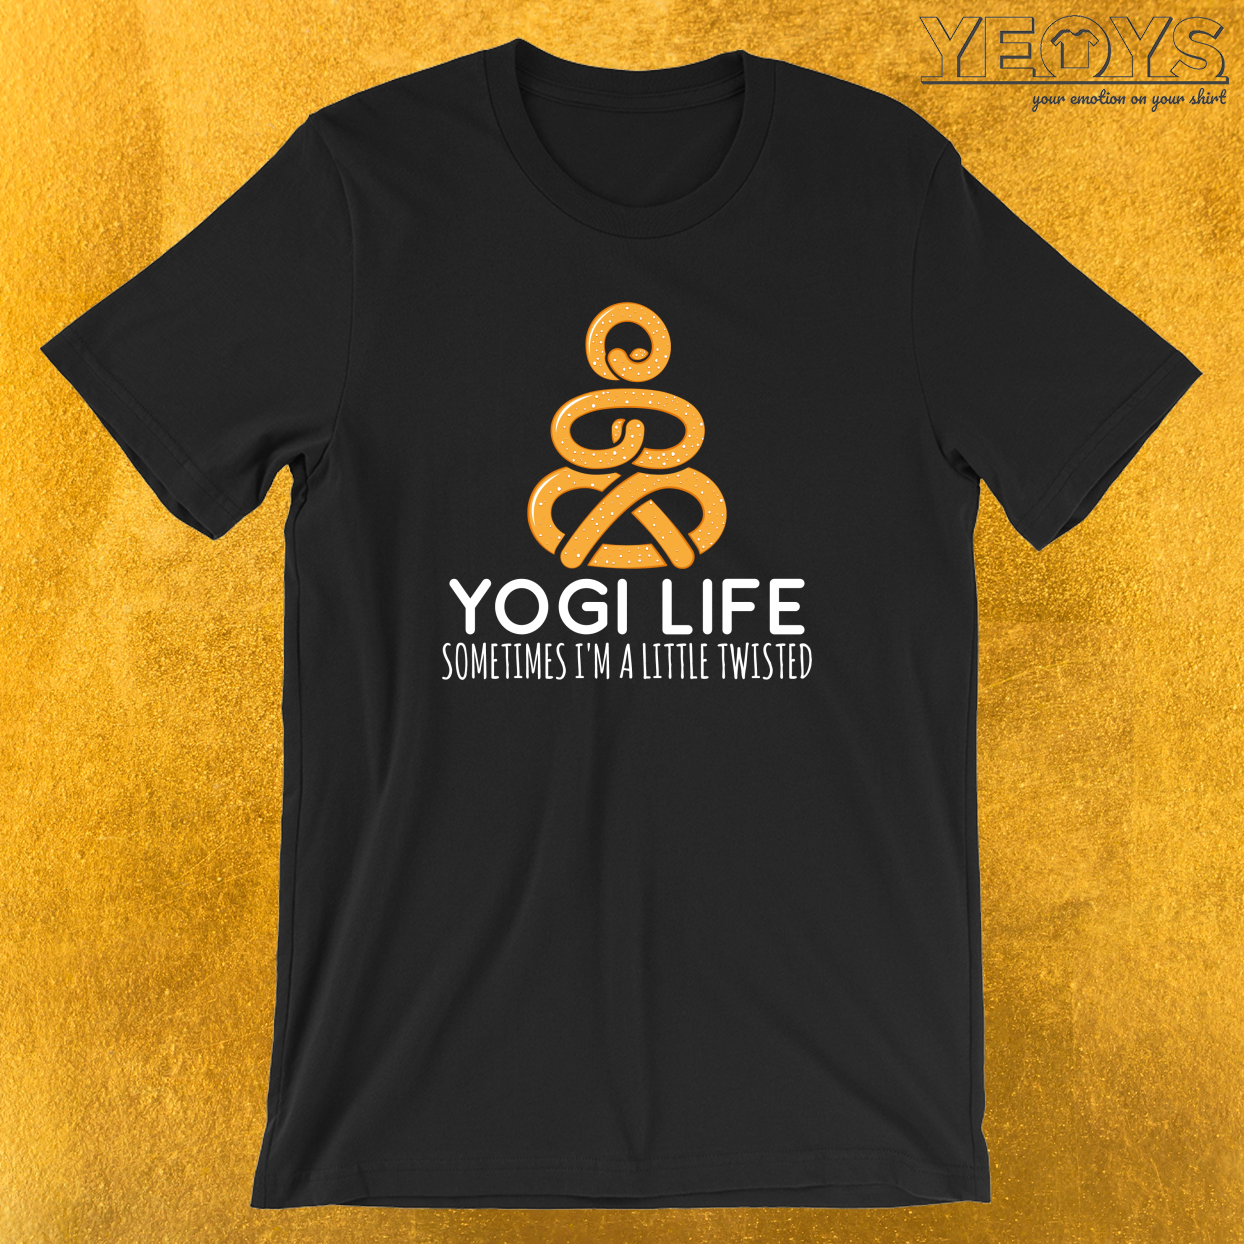 Yogi Life Sometimes I'm A Little Twisted T-Shirt